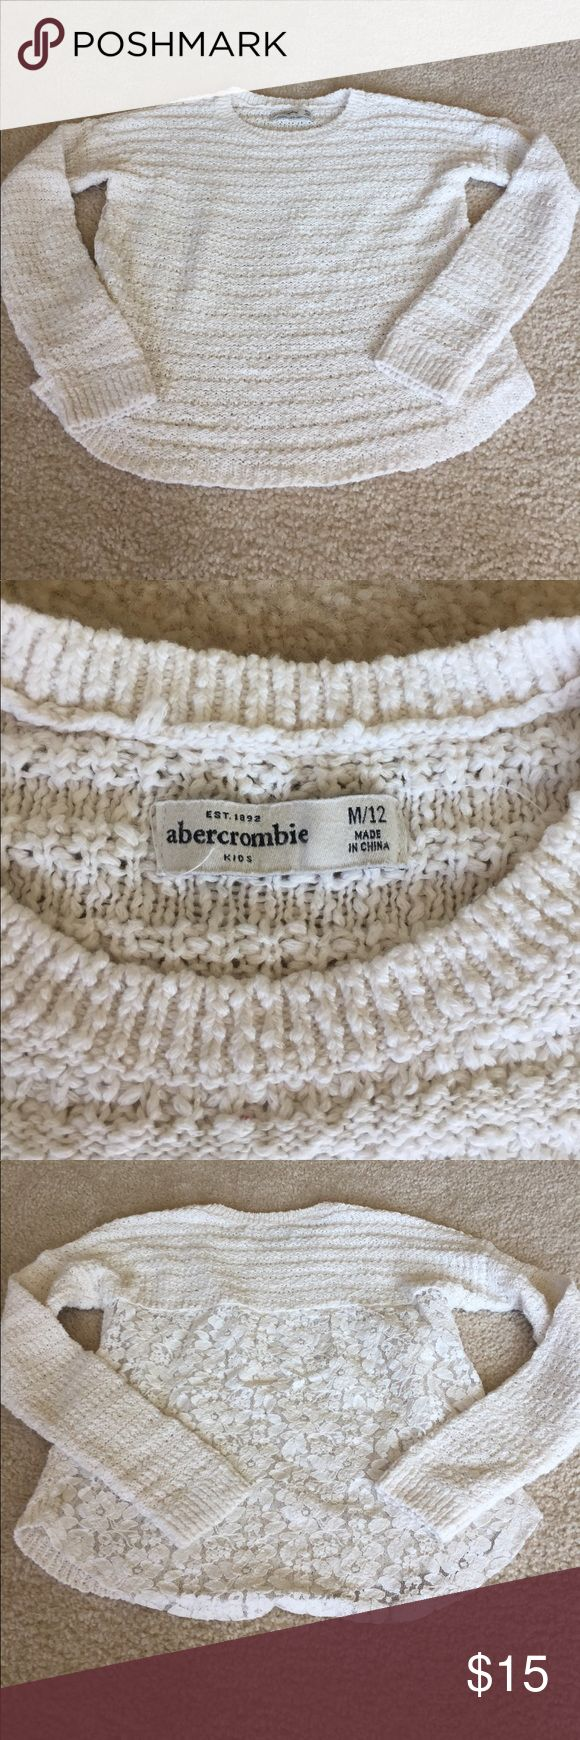 Abercrombie Girls Sweater Abercrombie girls medium sweater, 10/12 girls, gorgeous cream colored sweater with detail lace in the back, one of my favorite sweaters for my daughter unfortunately she only wore it once, no rips or stains, smoke free home bundle and save abercrombie kids Shirts & Tops Sweaters